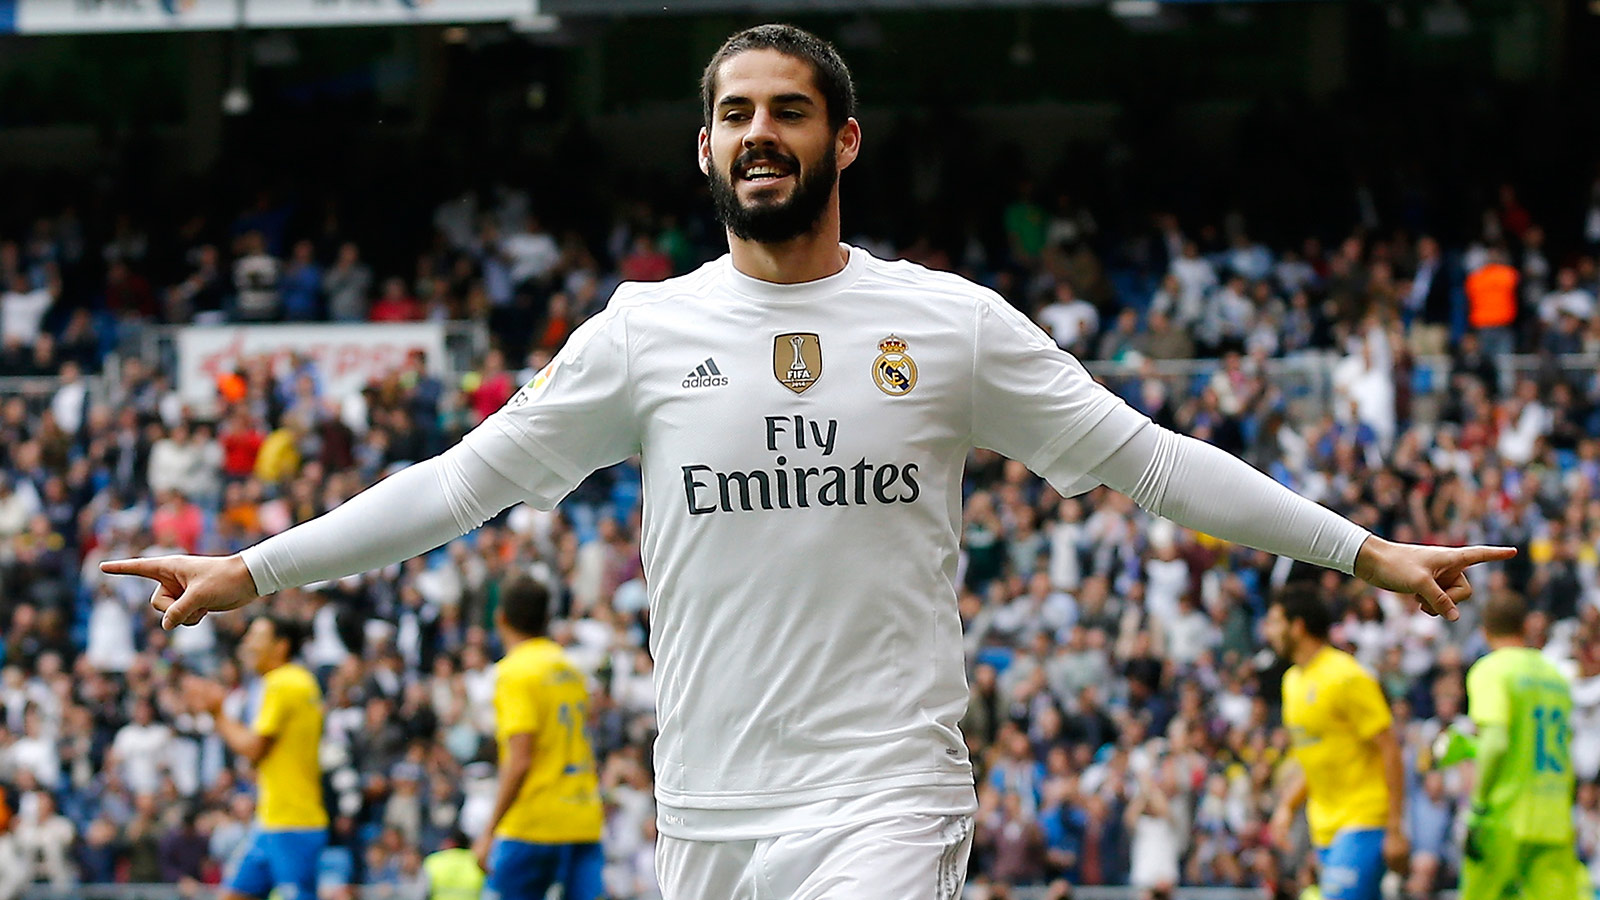 Real Madrid midfielder Isco eyes move to Manchester City